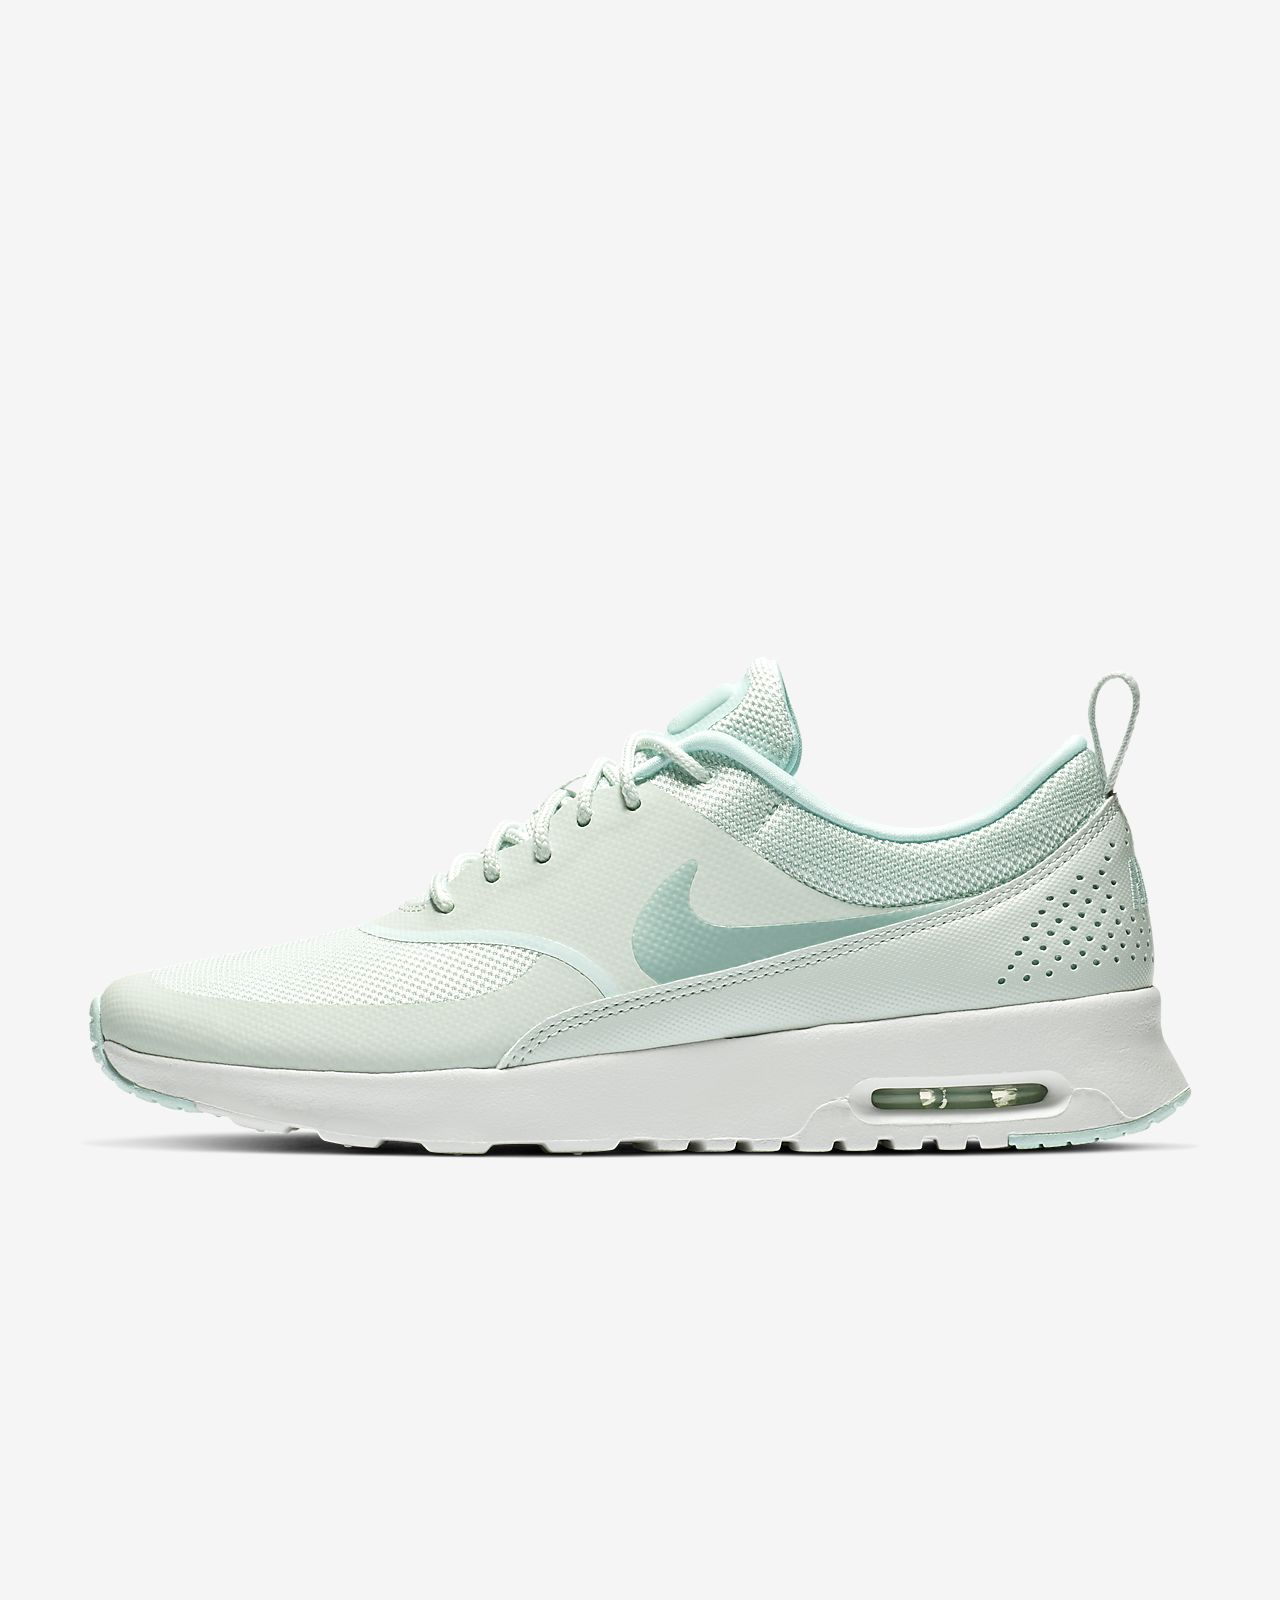 sports shoes db96d d32c3 ... Nike Air Max Thea Womens Shoe